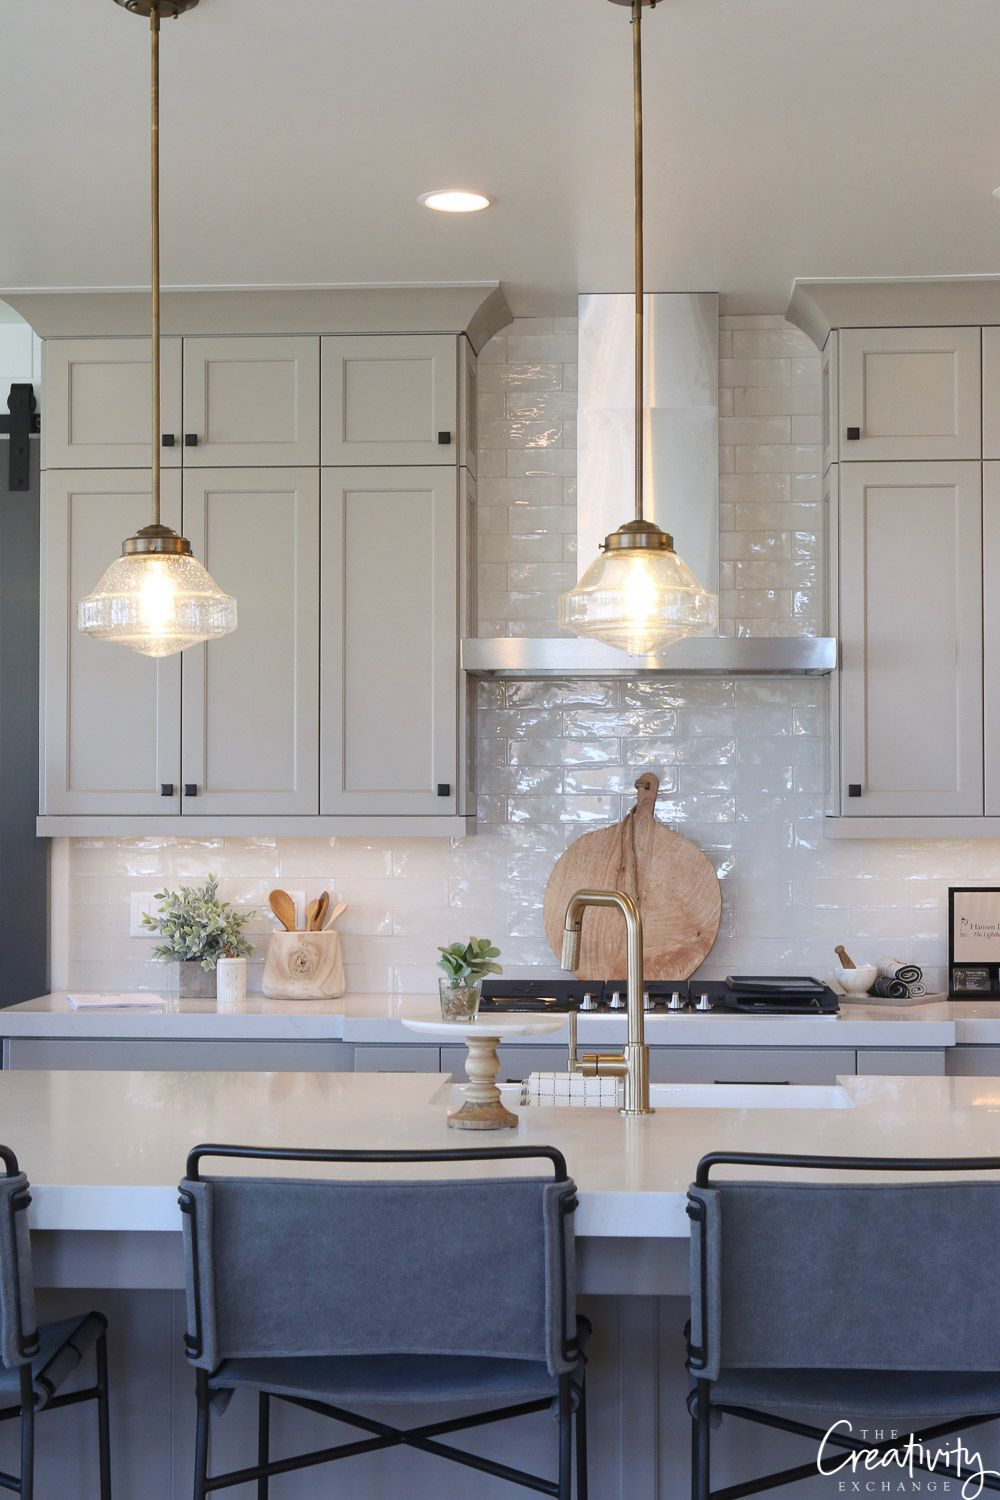 2019 Paint Color Trends and Forecasts Kitchen trends